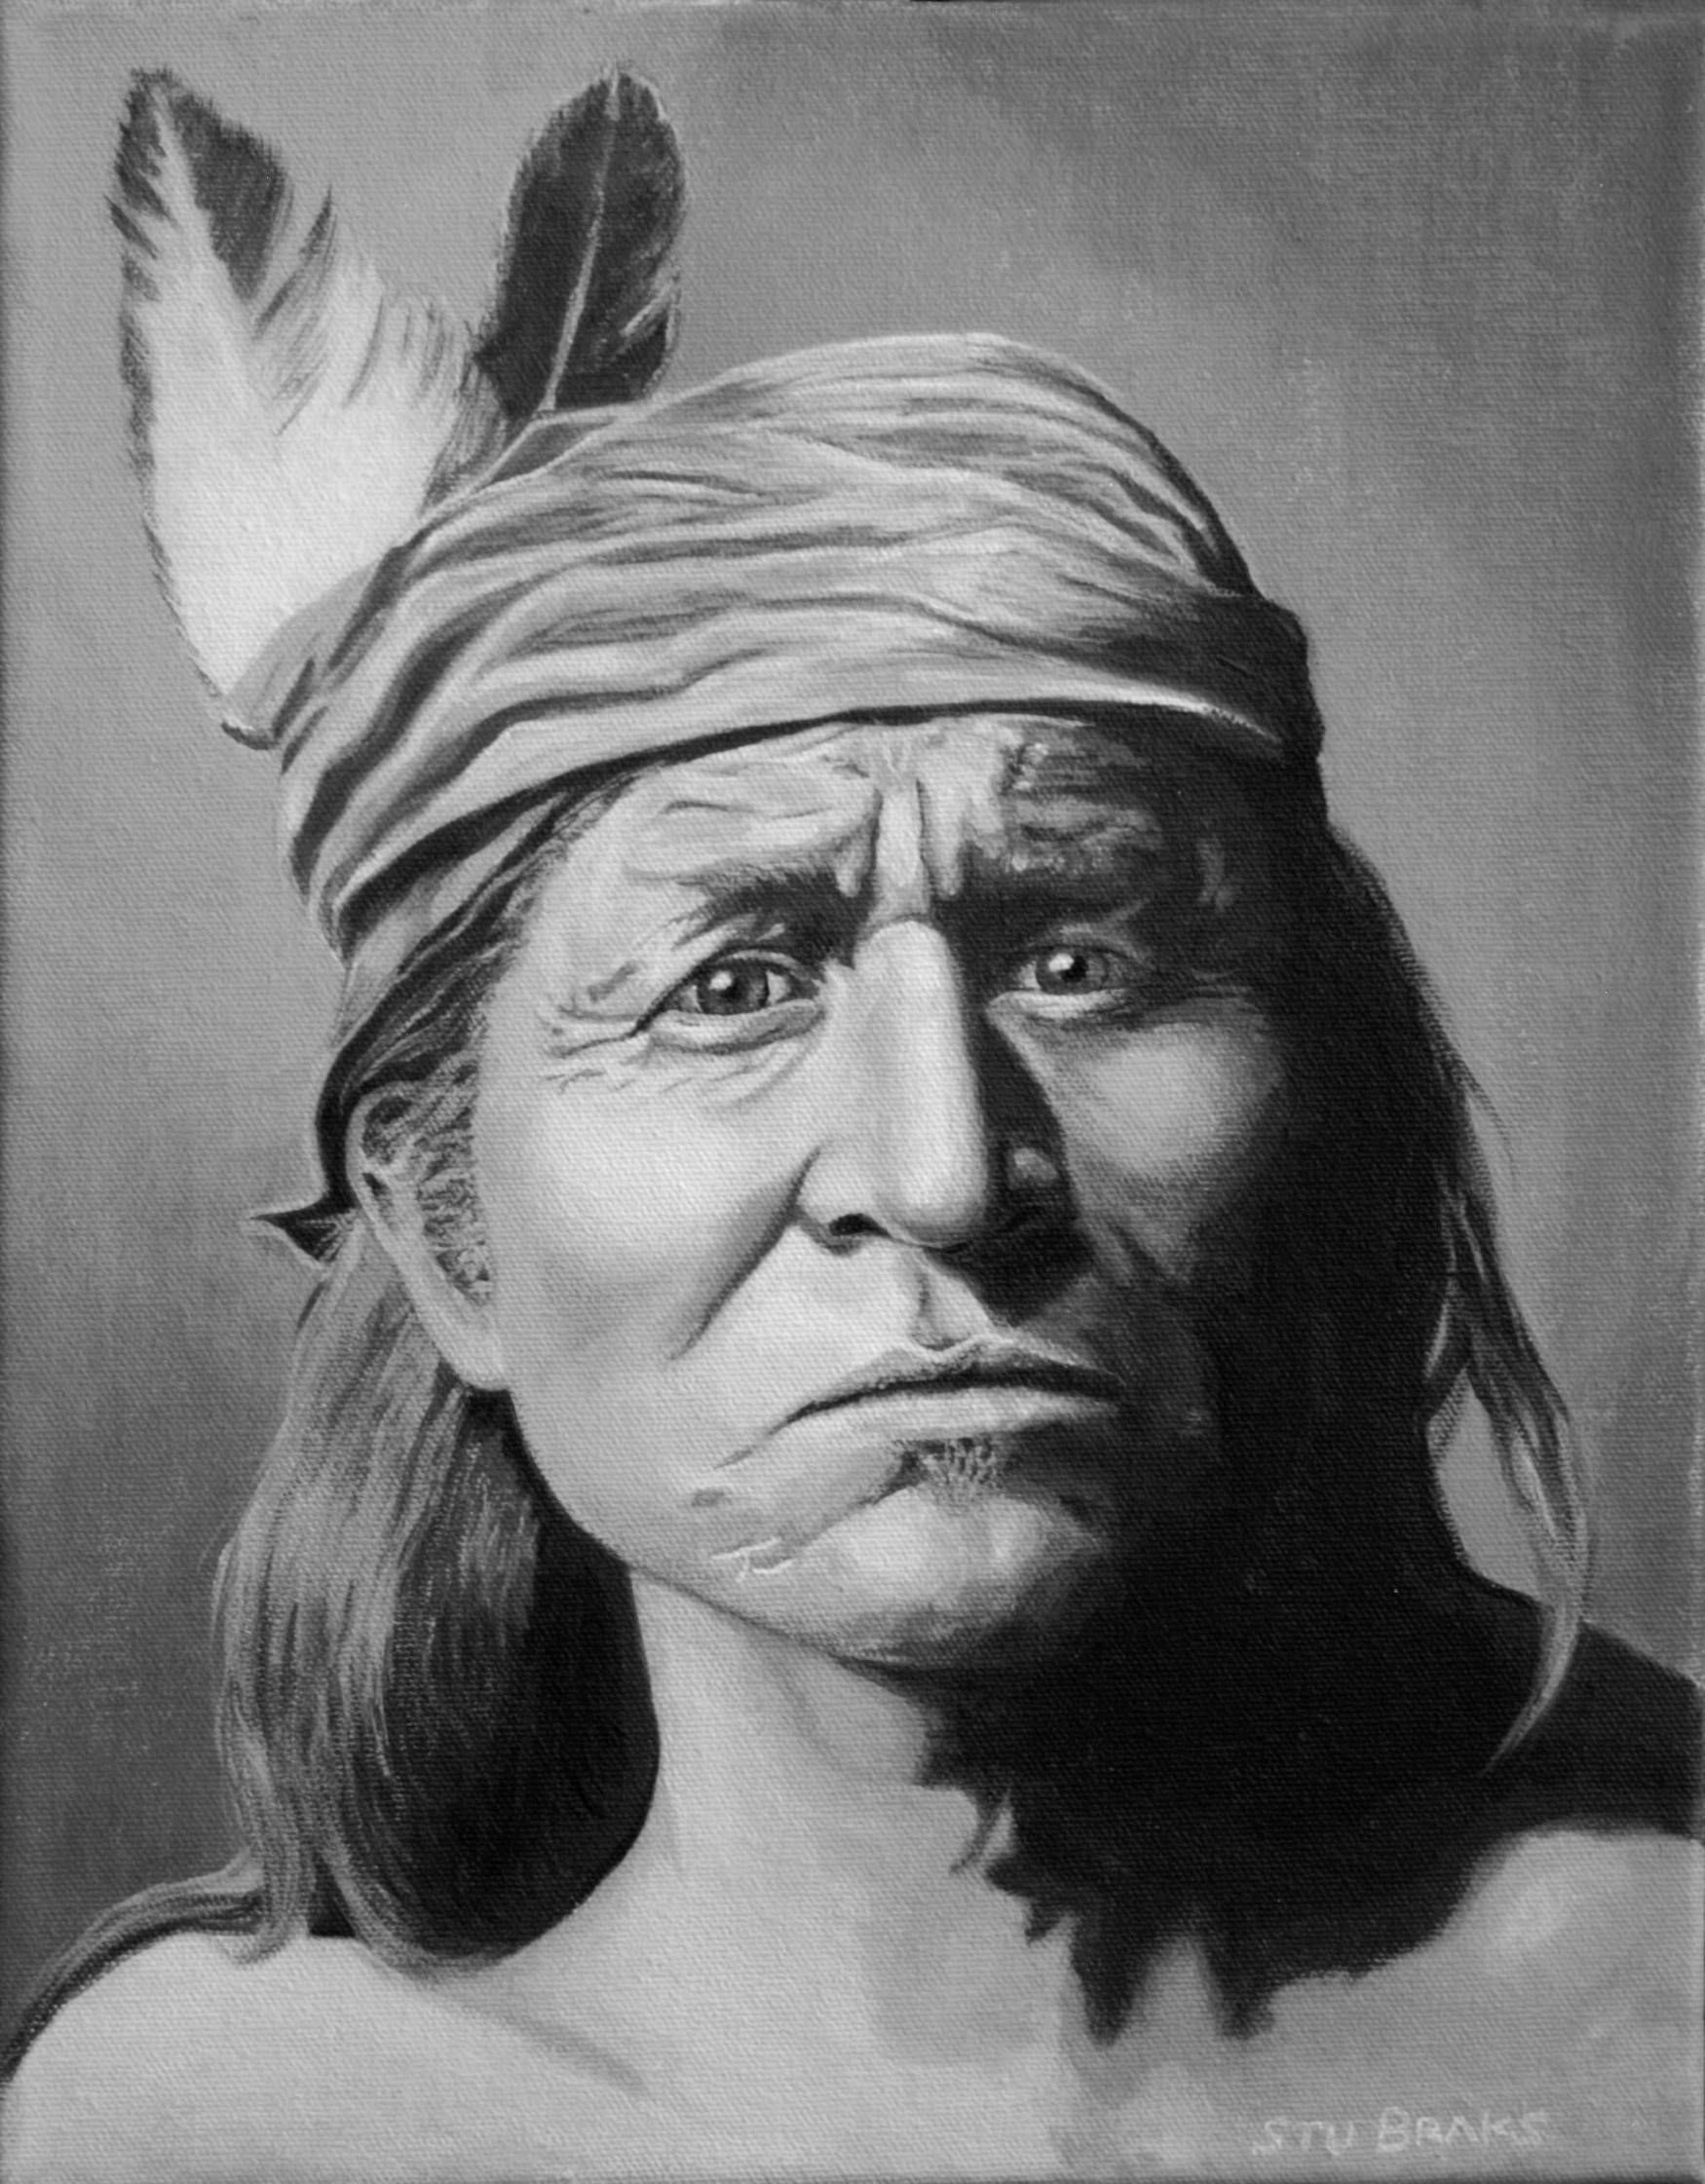 Apache Warrior painting by Stu Braks